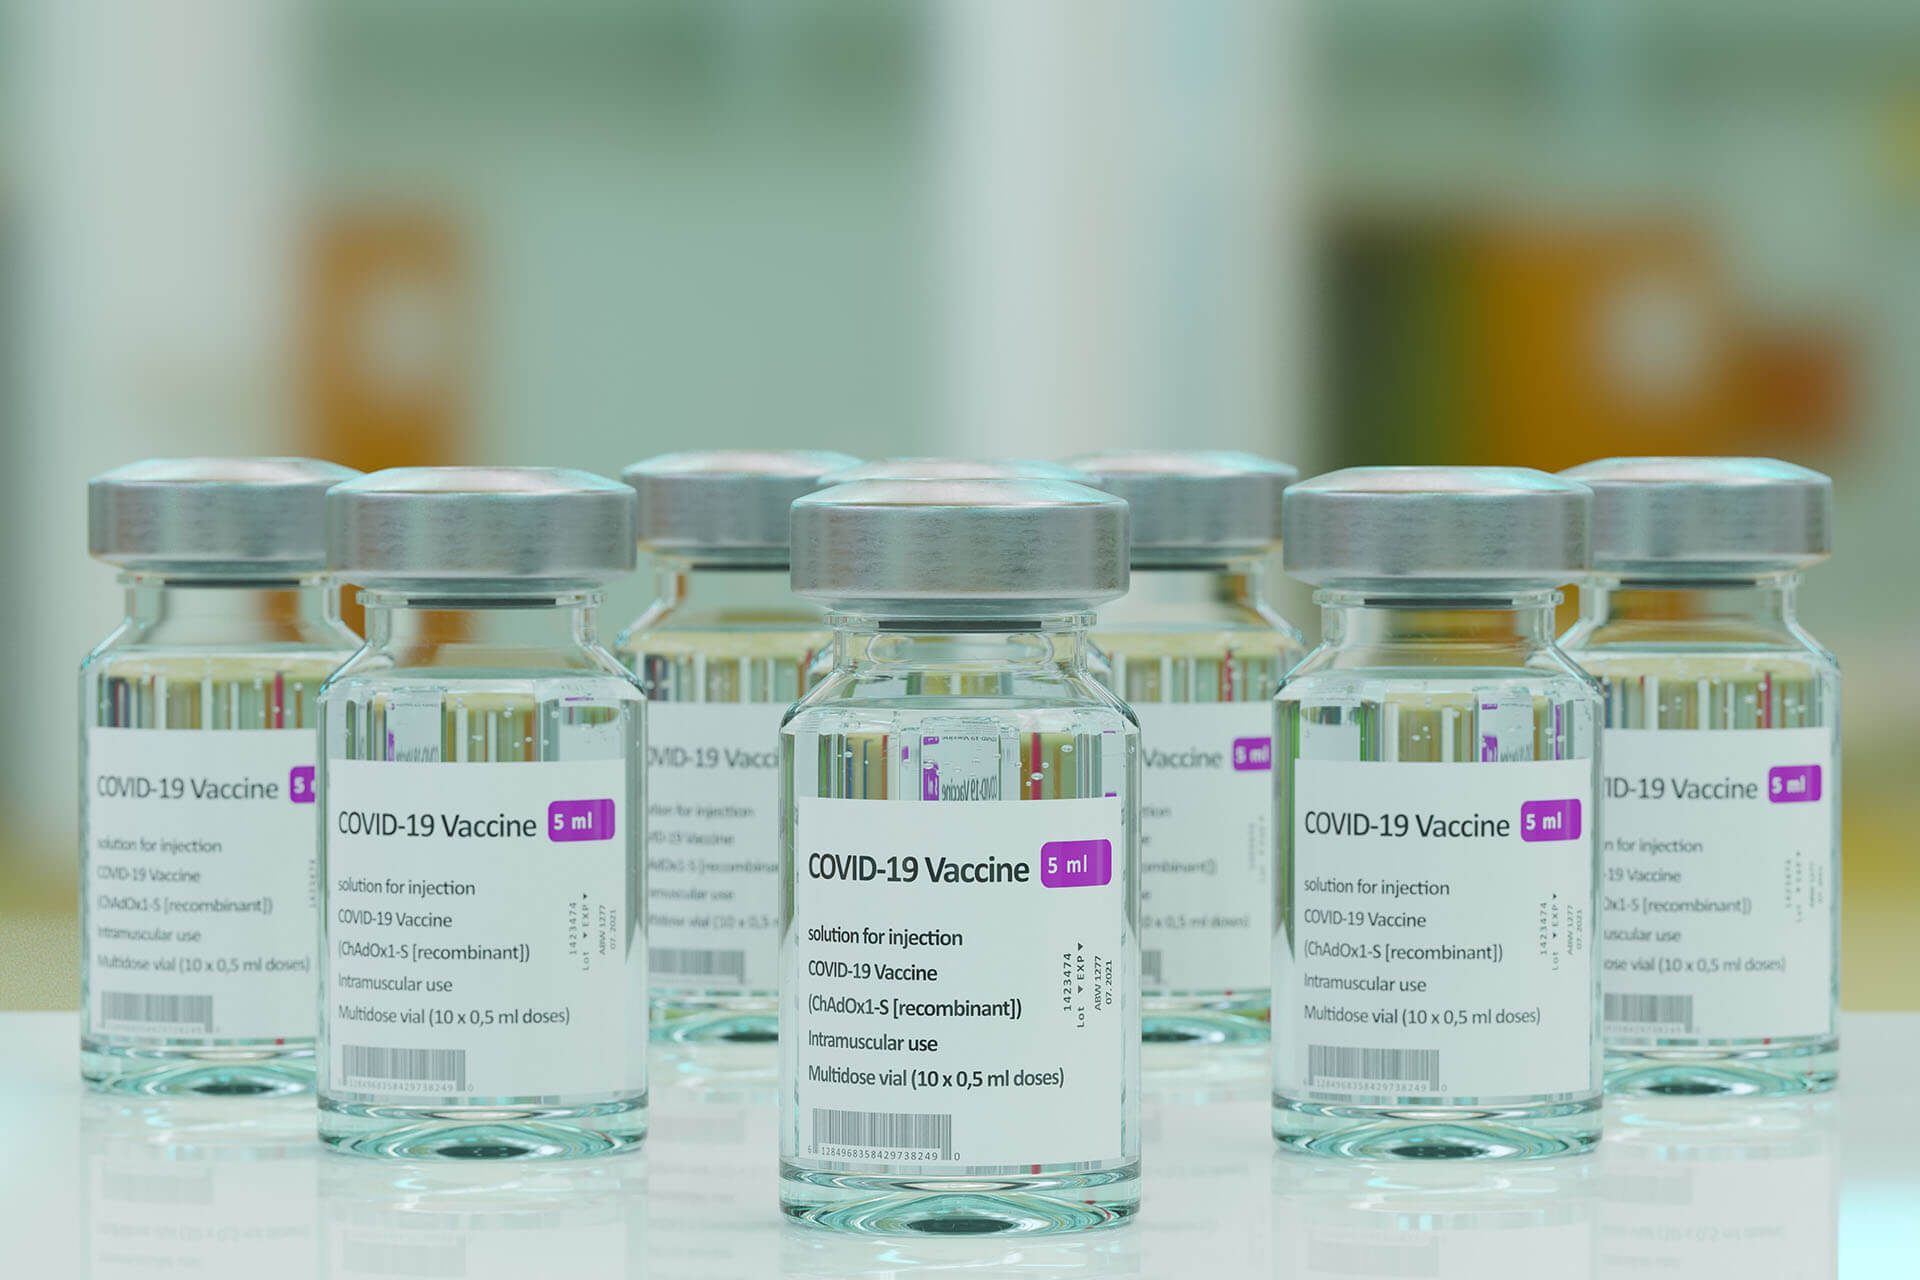 US: CDC to Mandate COVID-19 Vaccines on October 1, 2021